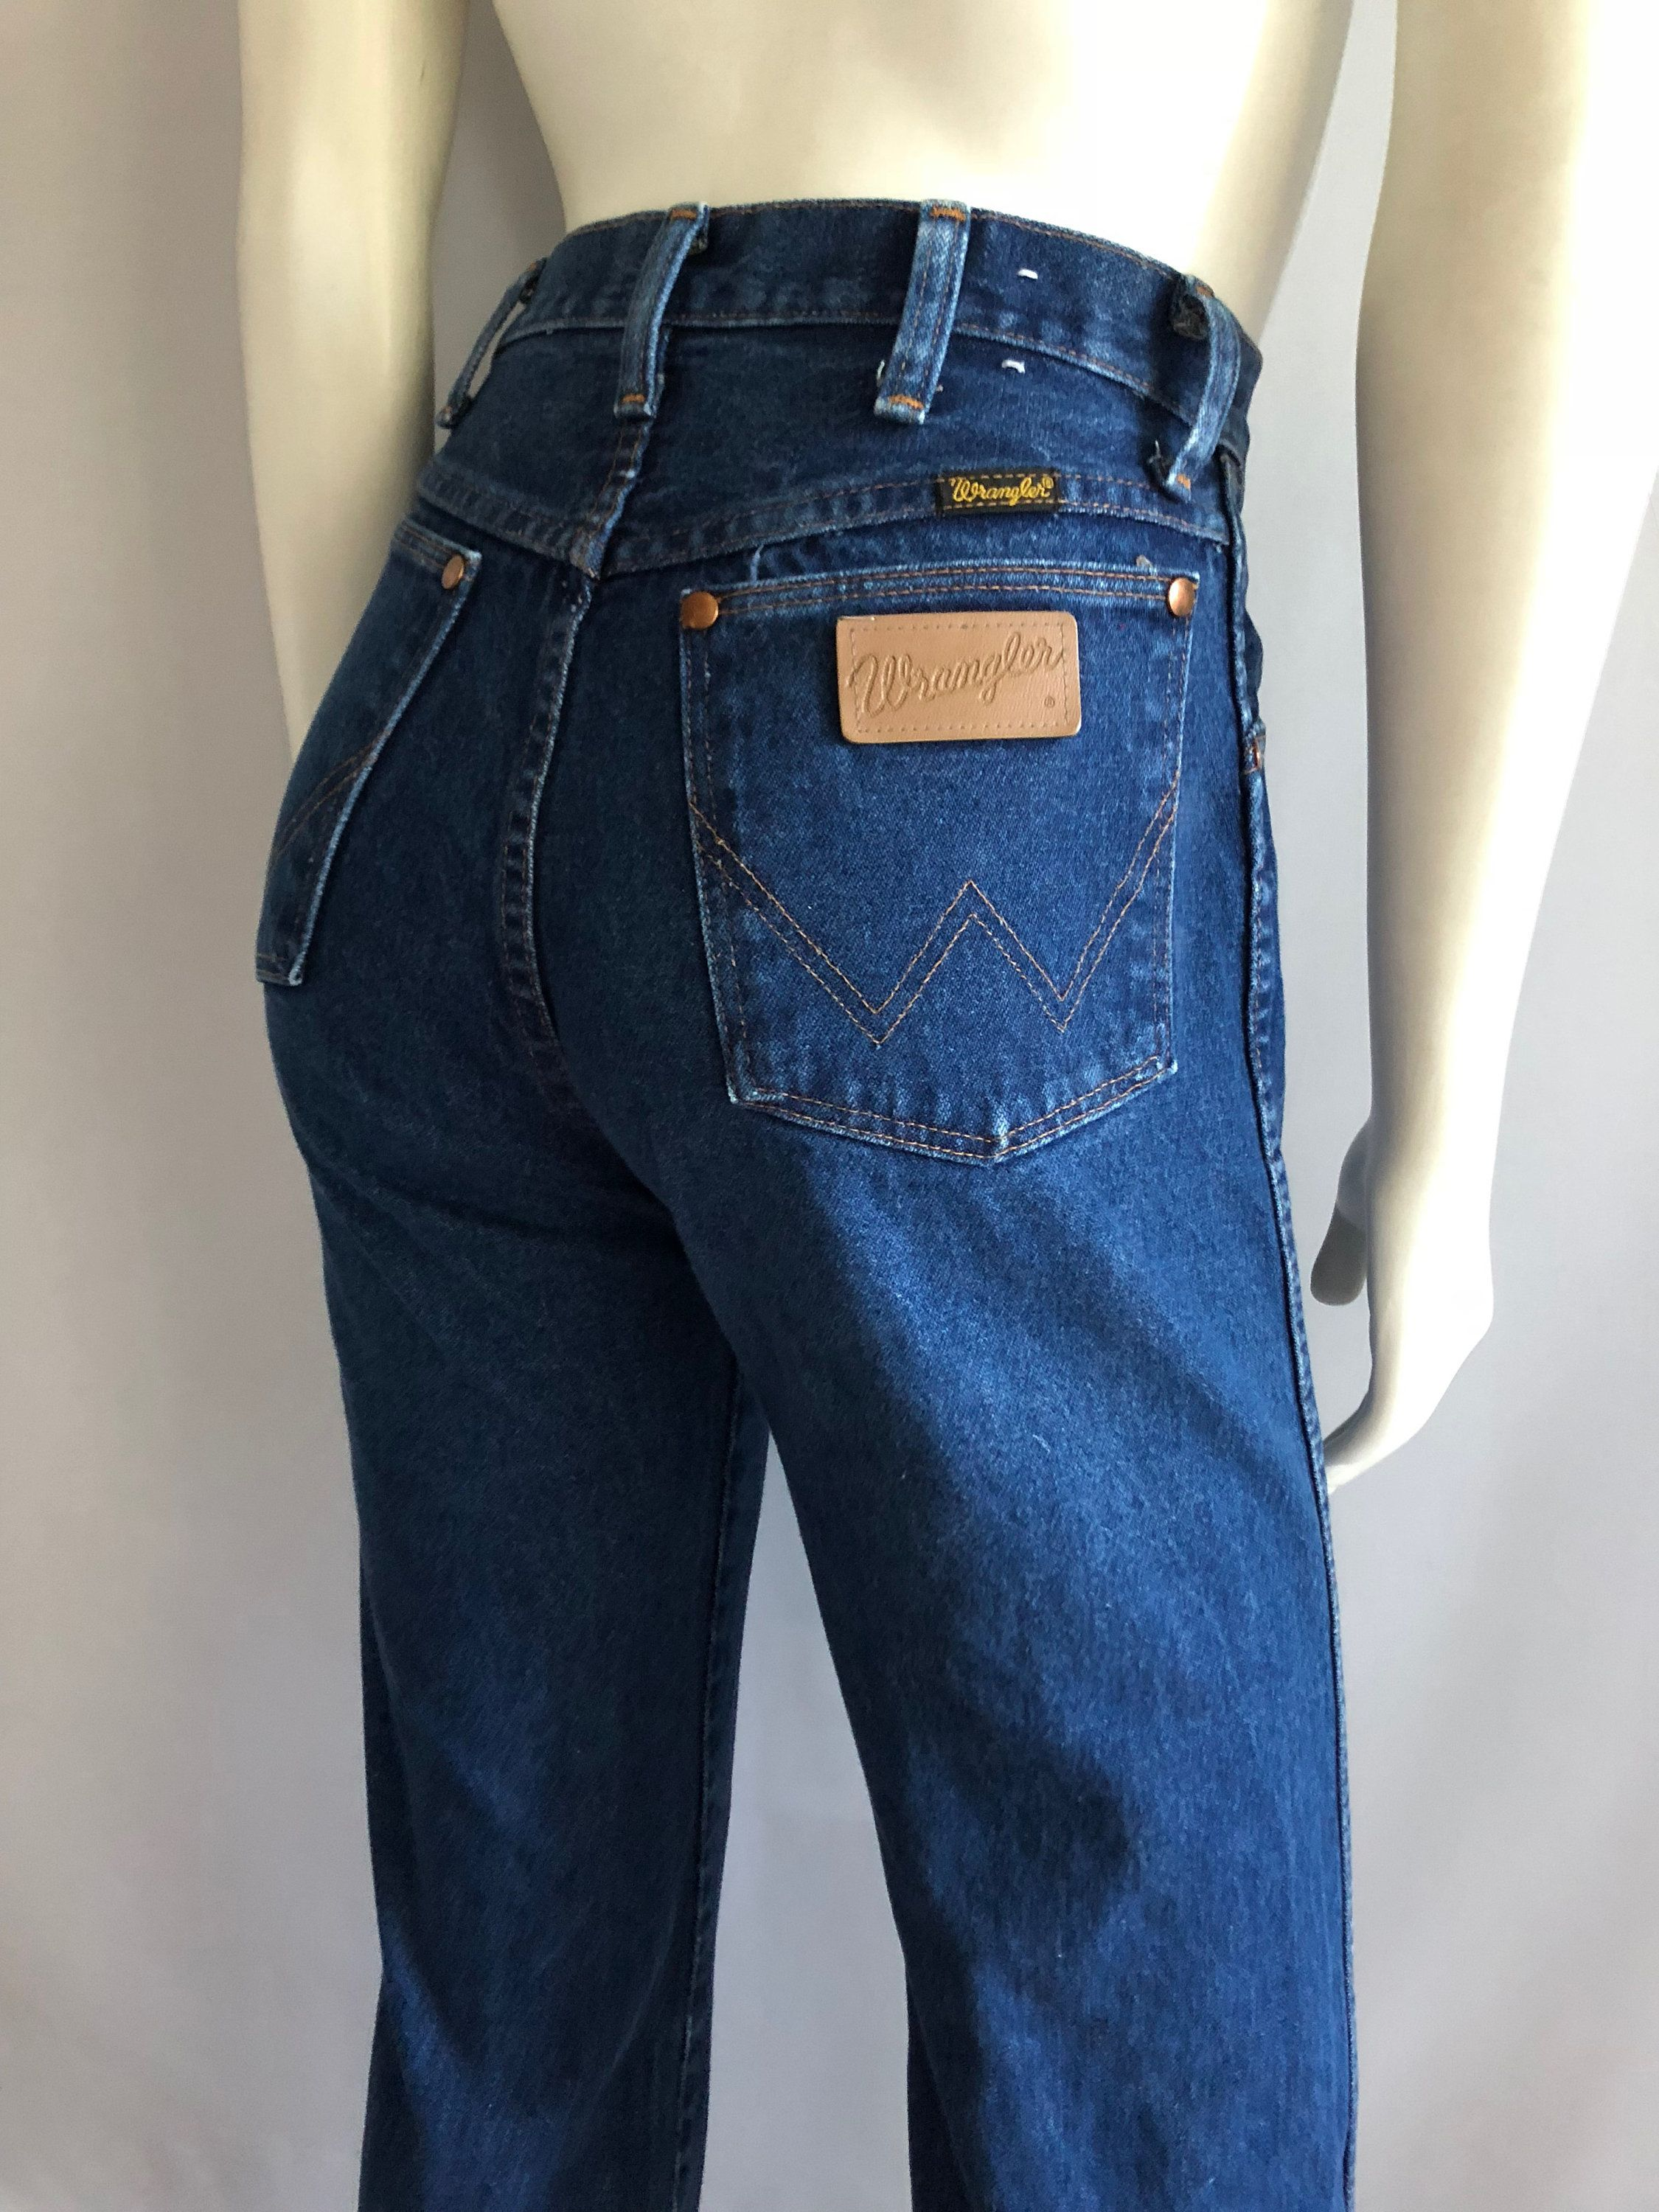 f3253a94ced8 Vintage Women's 80's Wrangler Jeans, High Waisted, Straight Leg (S) by  Freshandswanky on Etsy